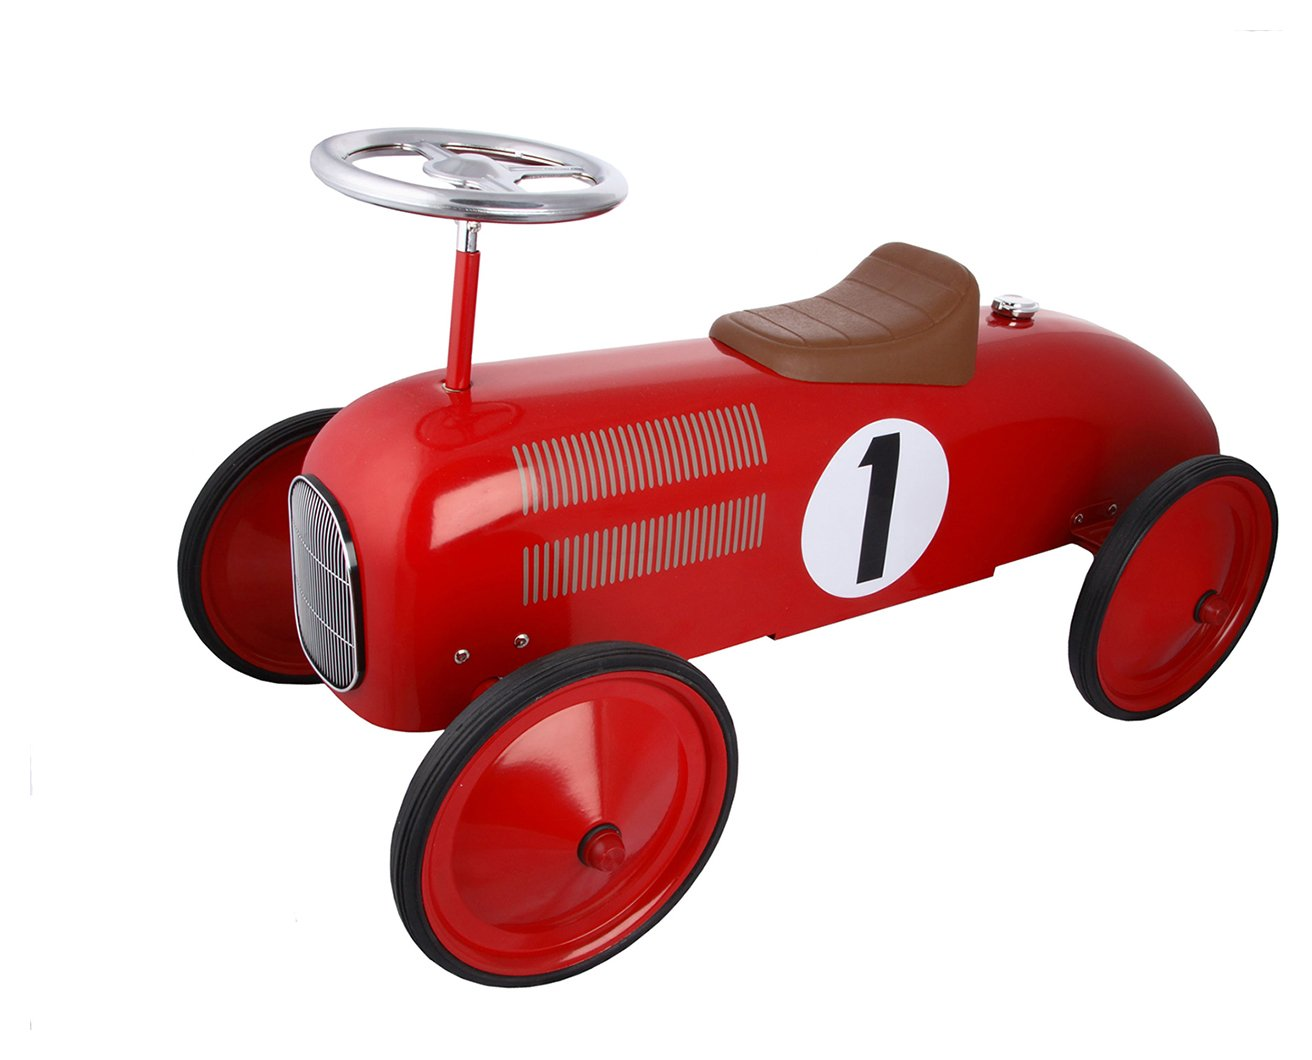 Image of Great Gizmos Classic Racer - Red.